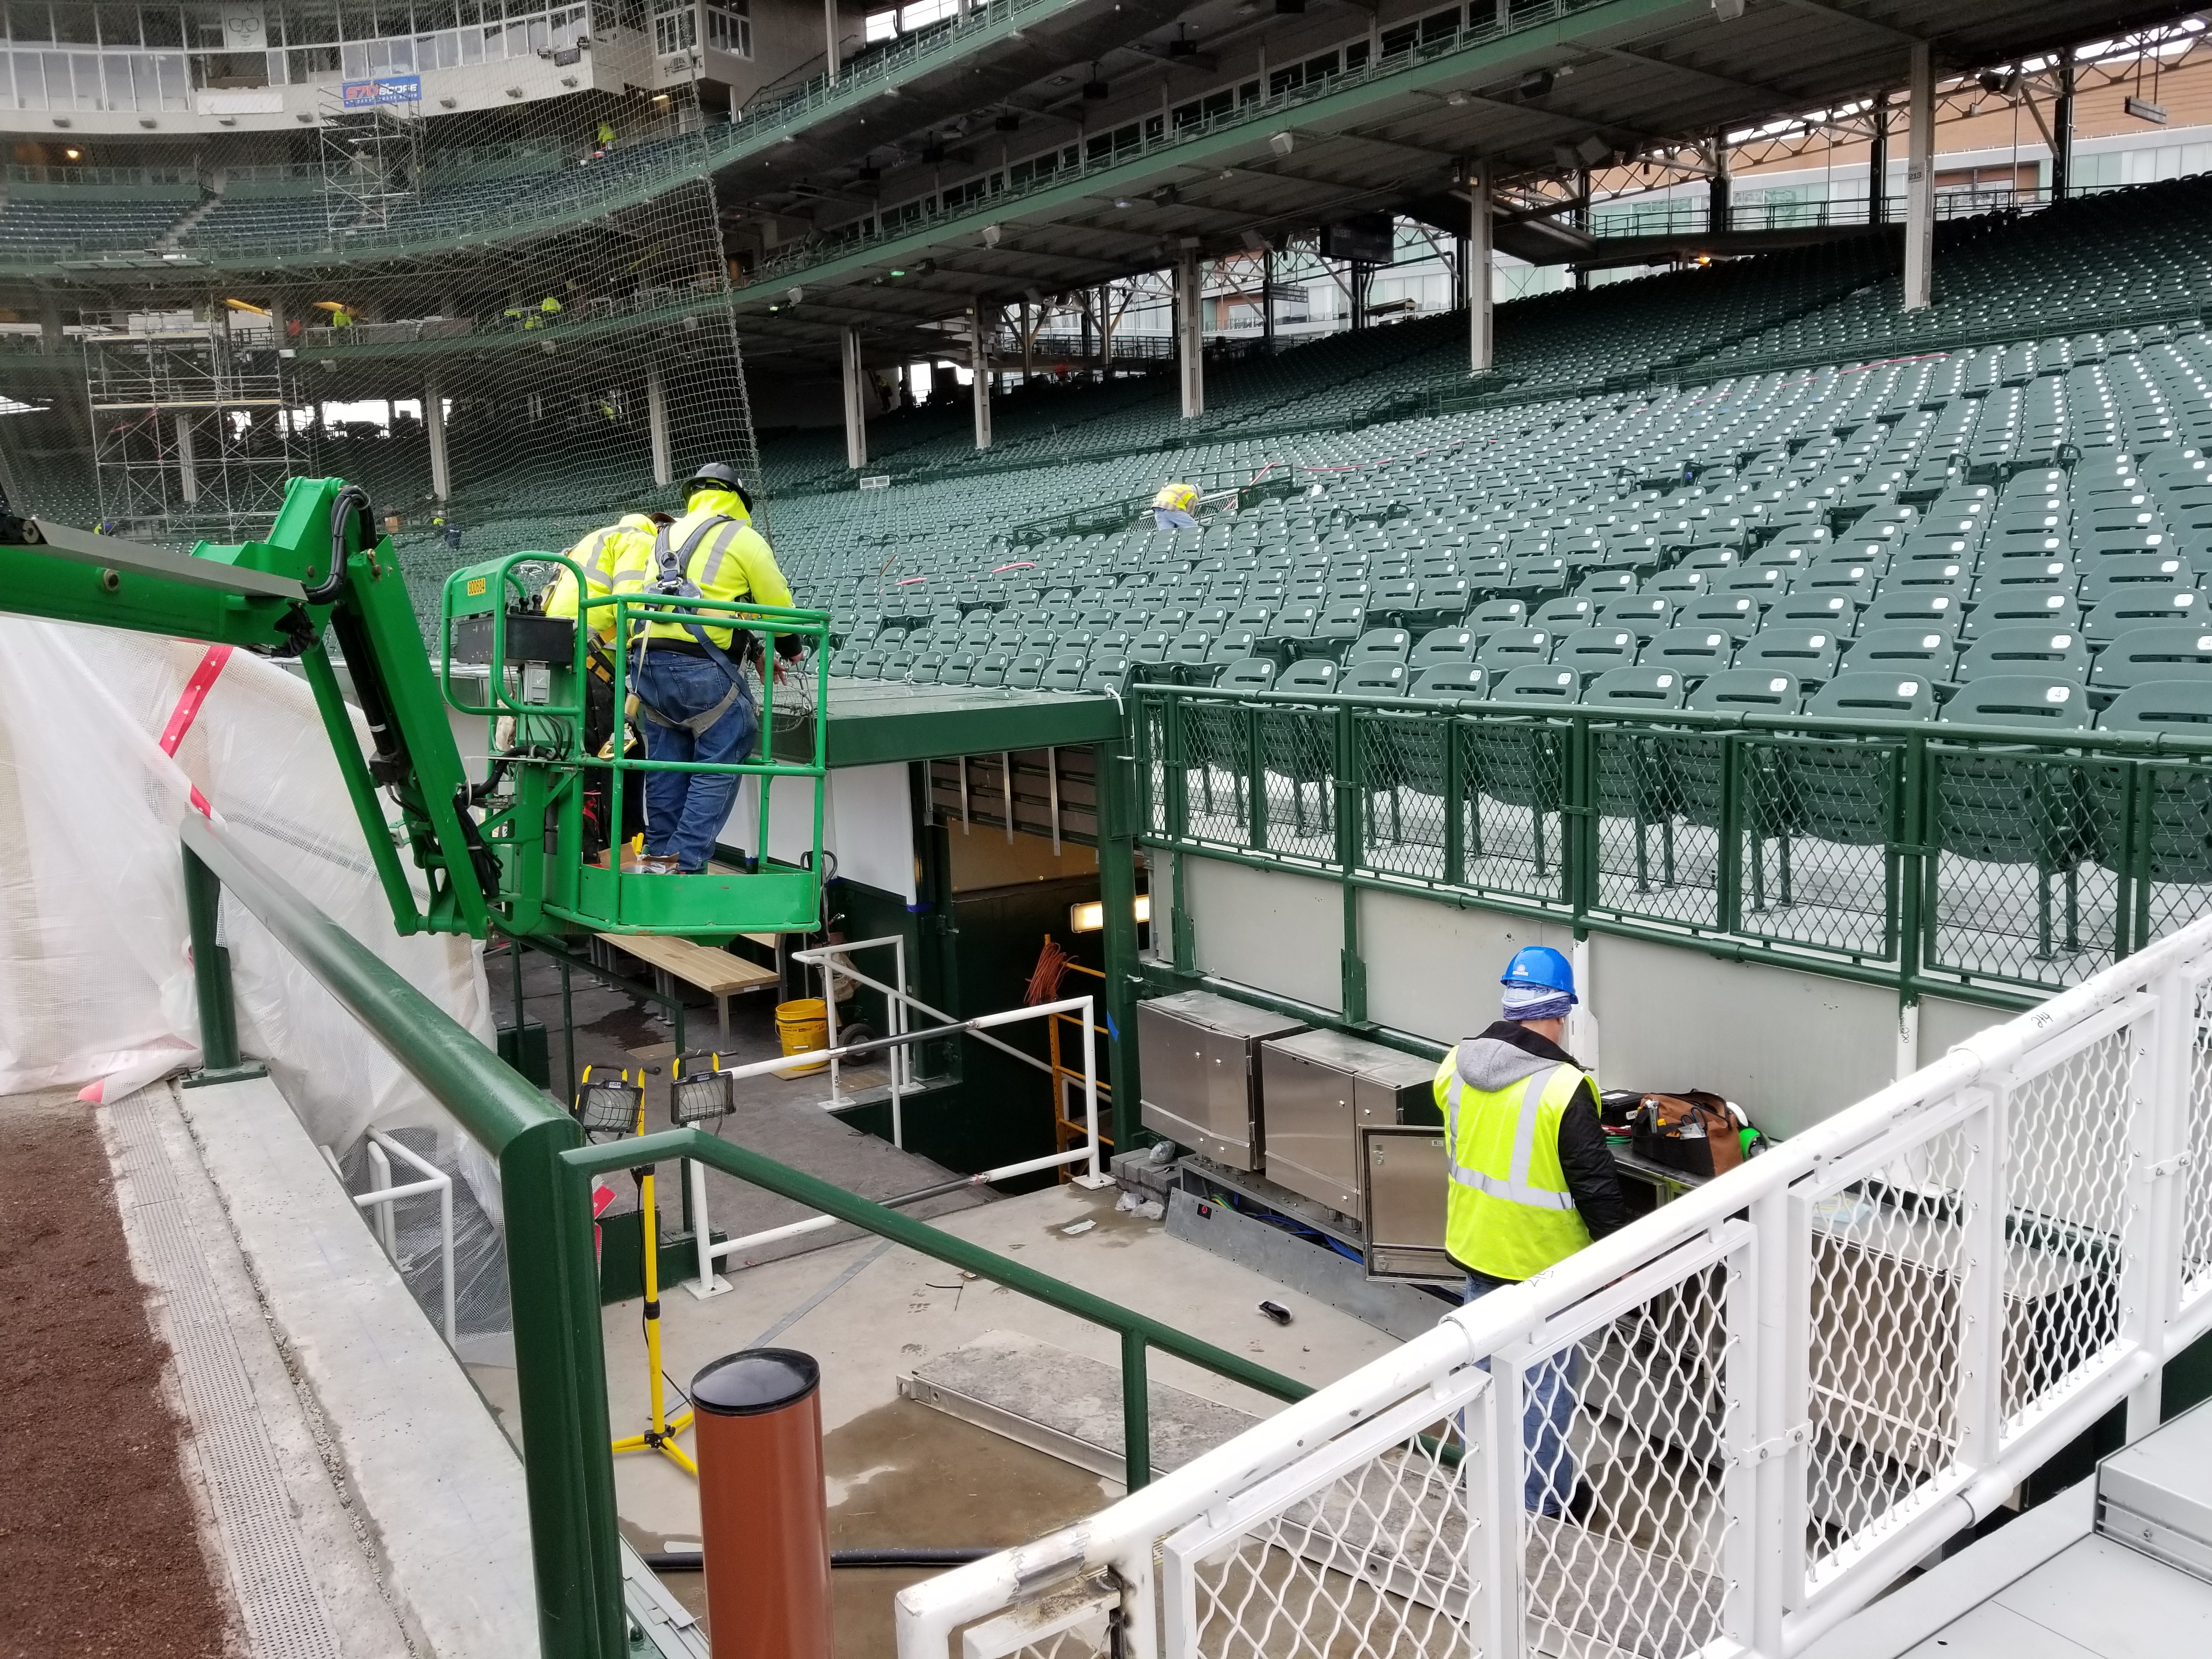 grapher TV camera area adjacent to third base dugout Al Yellon